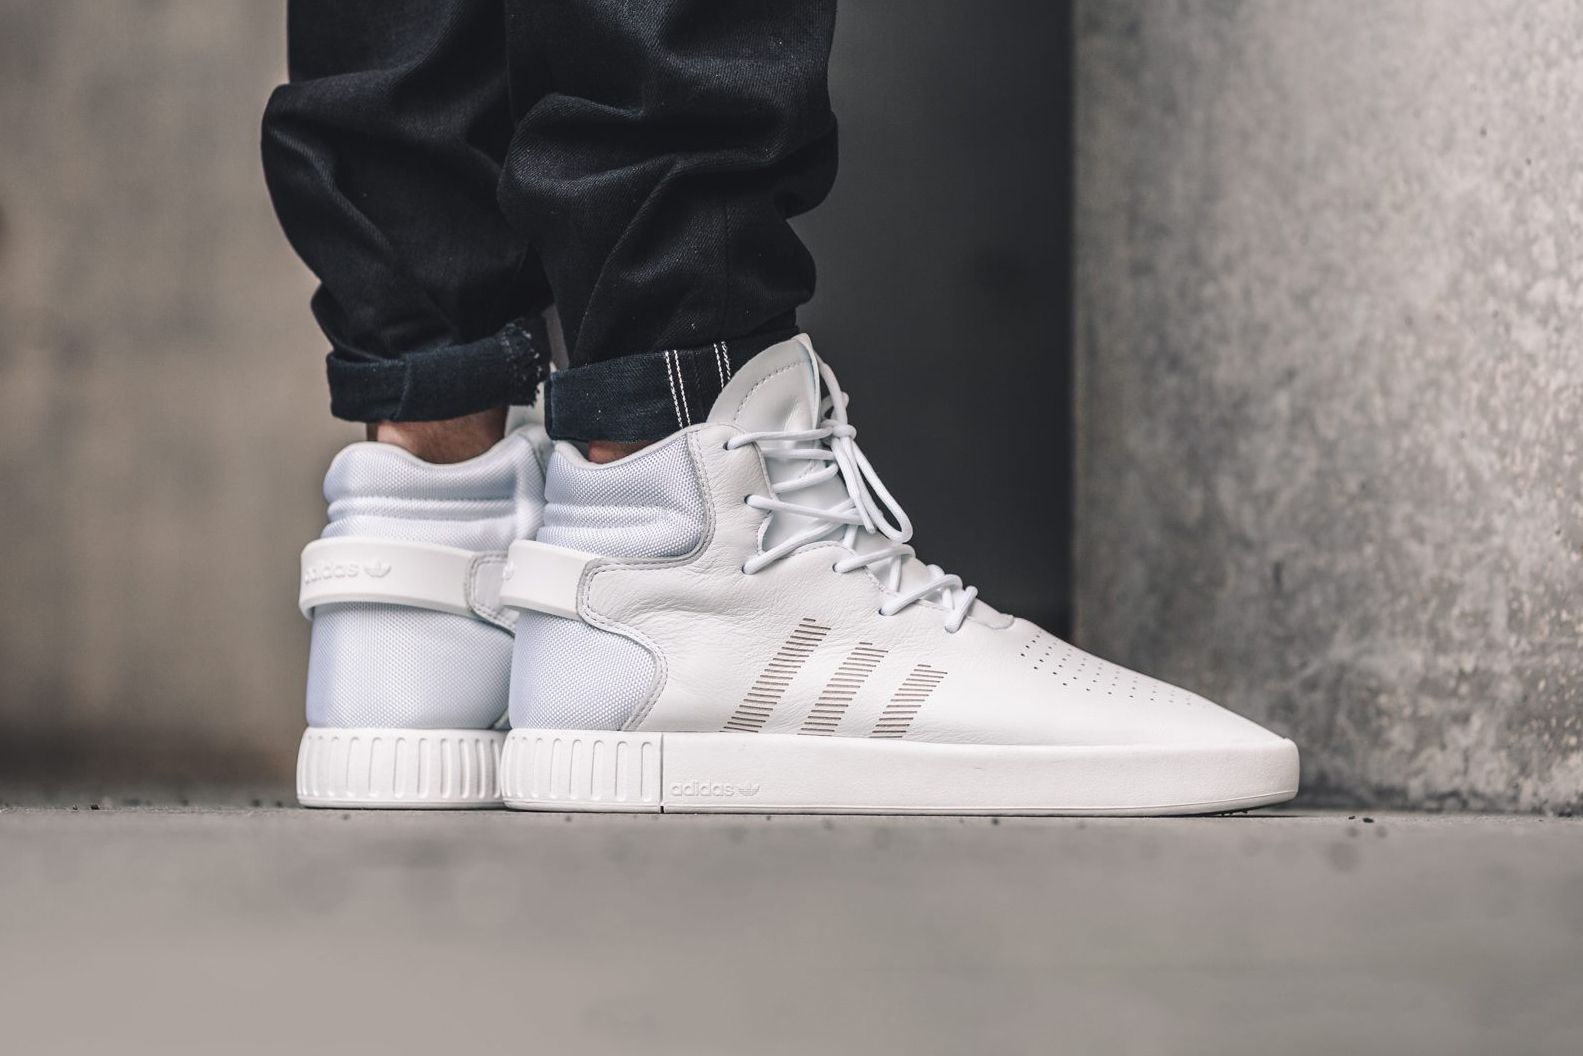 A high fashion runway sneaker under $170, meet Adidas